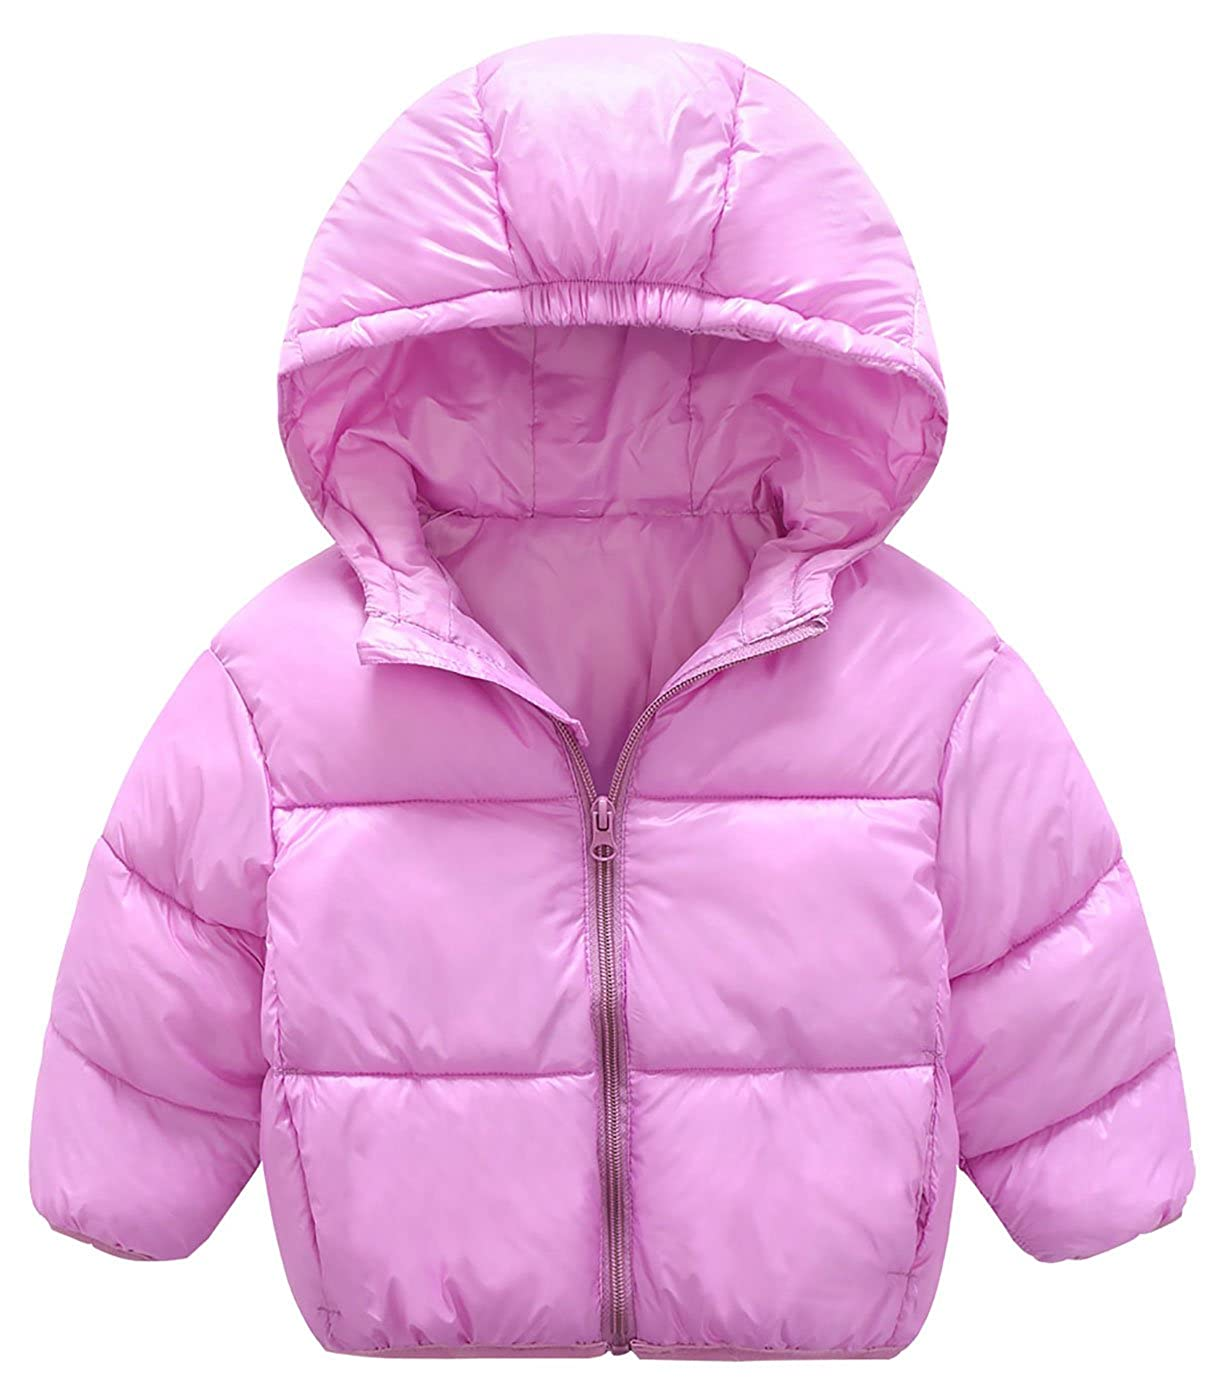 Mengxiaoya Baby Boys Girls Hoodie Down Jacket Lightweight Puffer Coat Windproof Cotton Purple 12-24Months